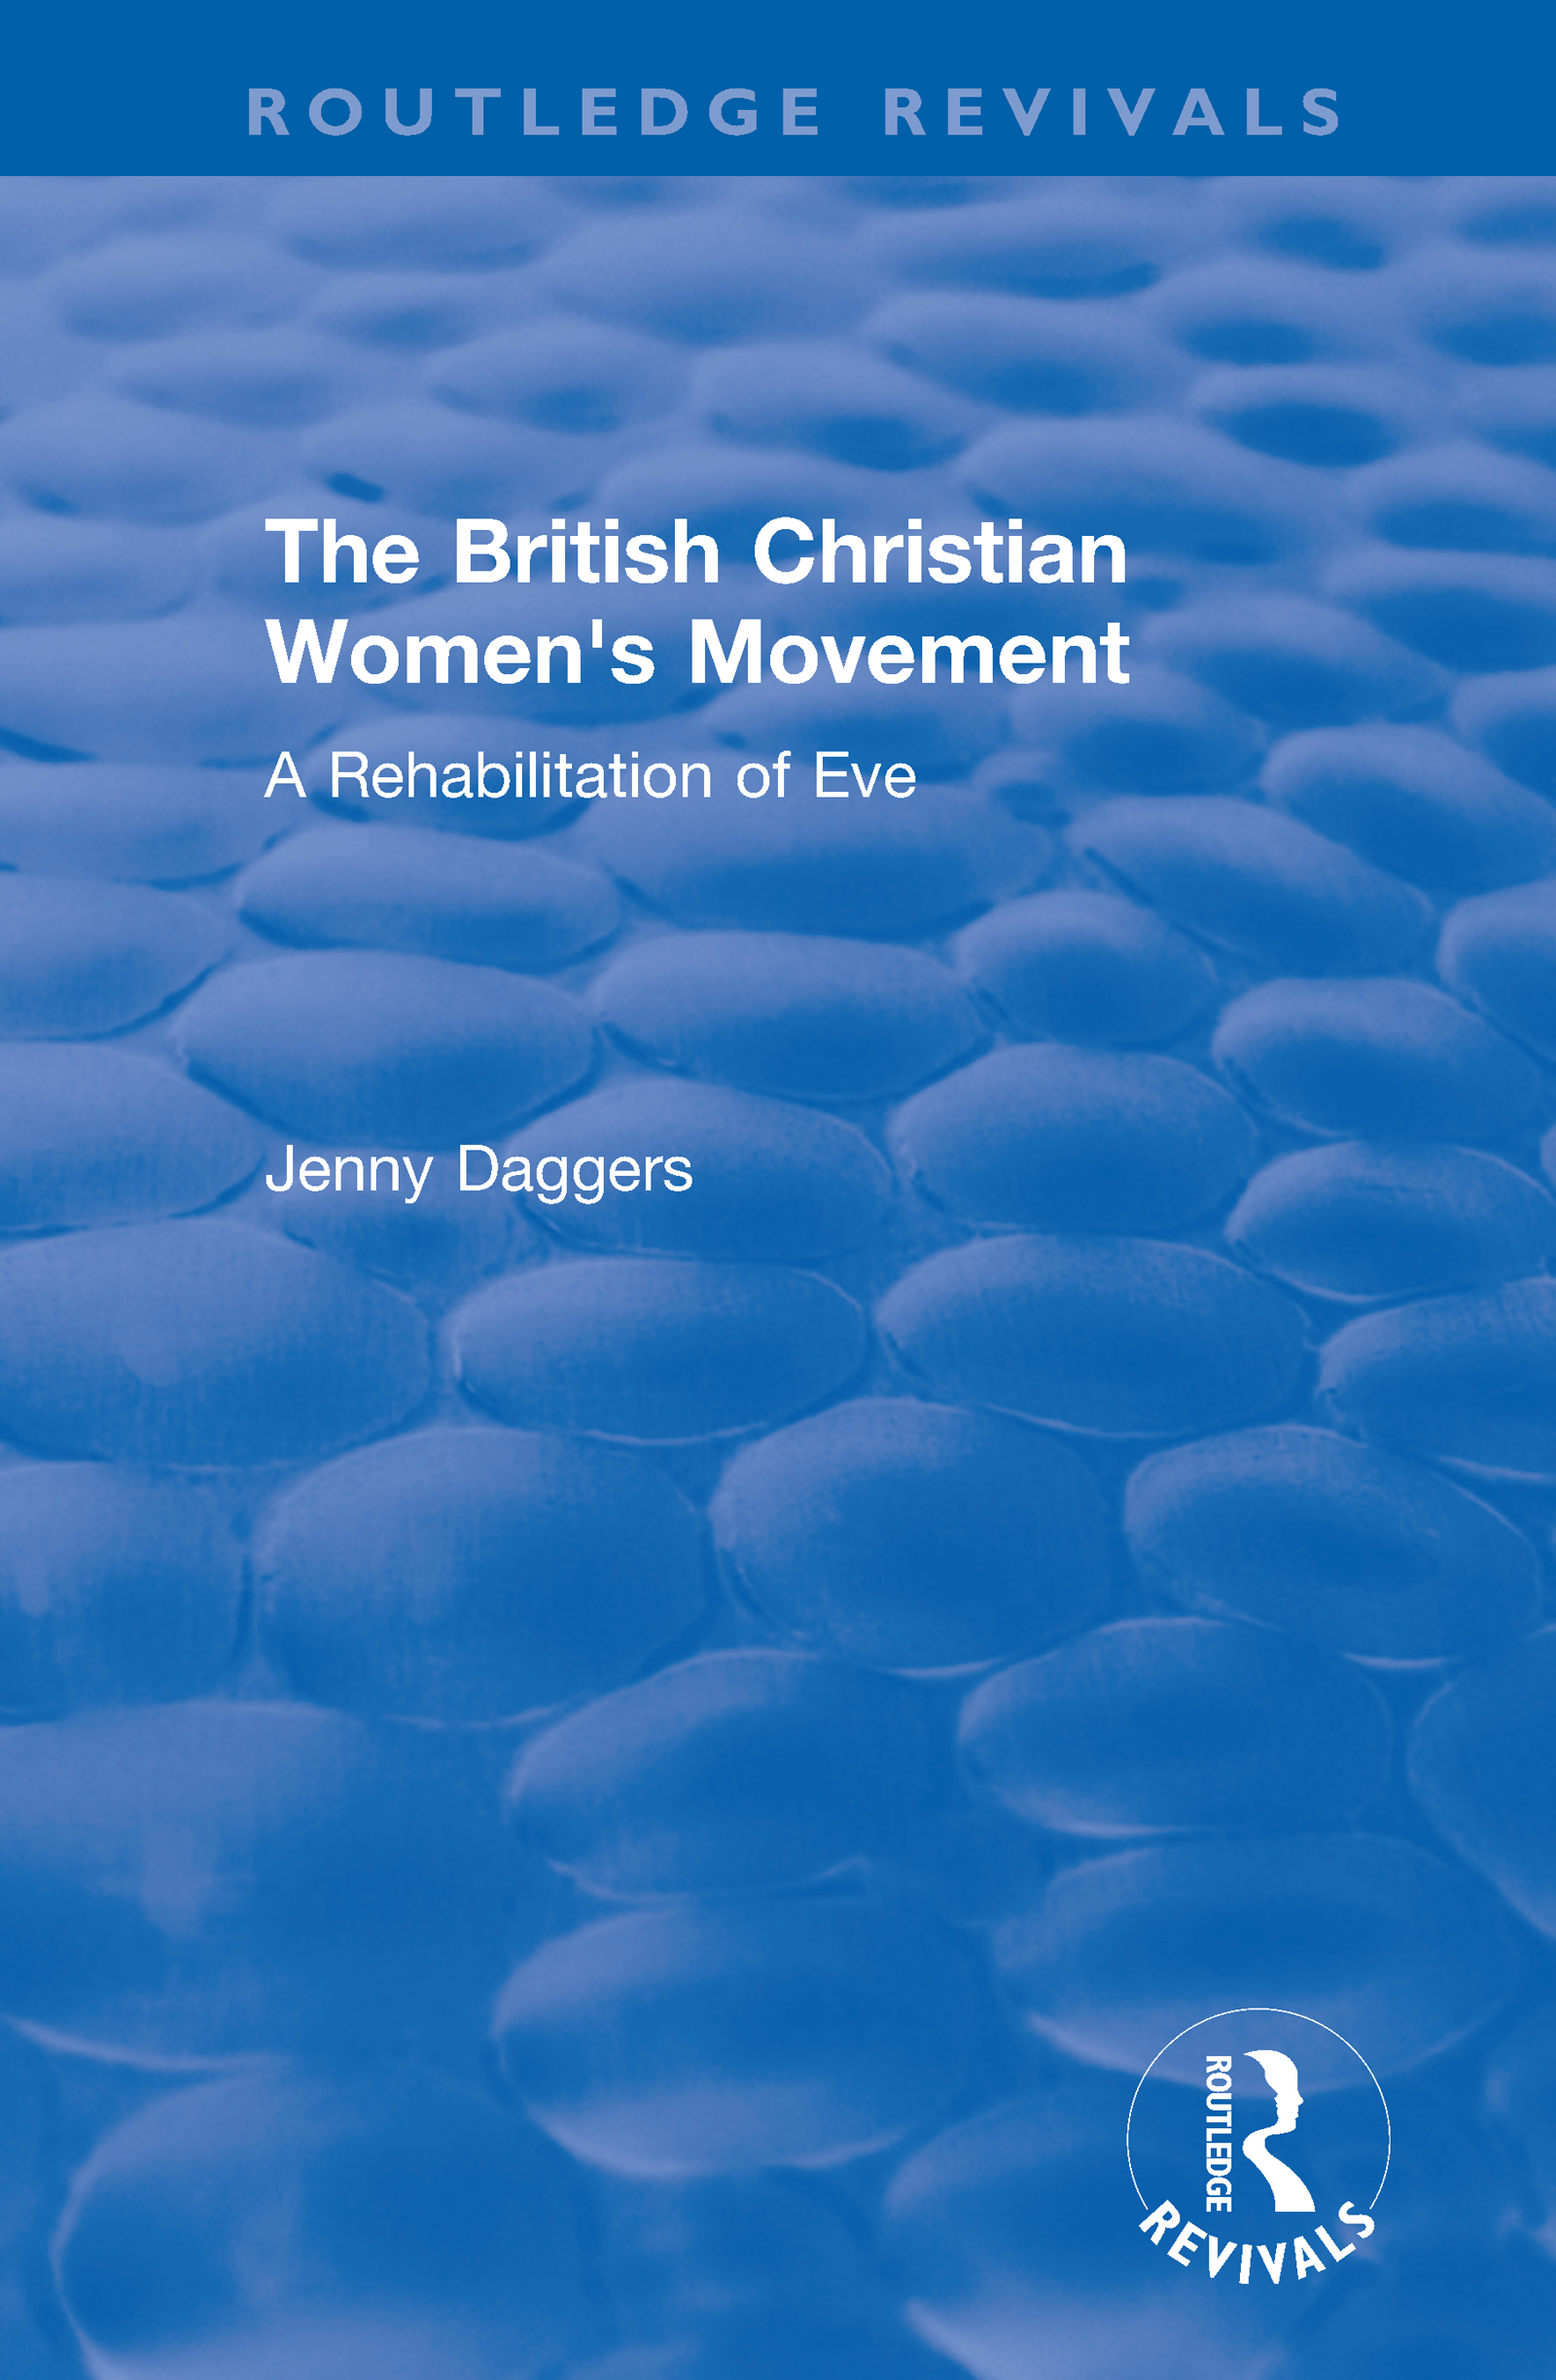 Routledge Revivals: The British Christian Women's Movement (2002): A Rehabilitation of Eve book cover